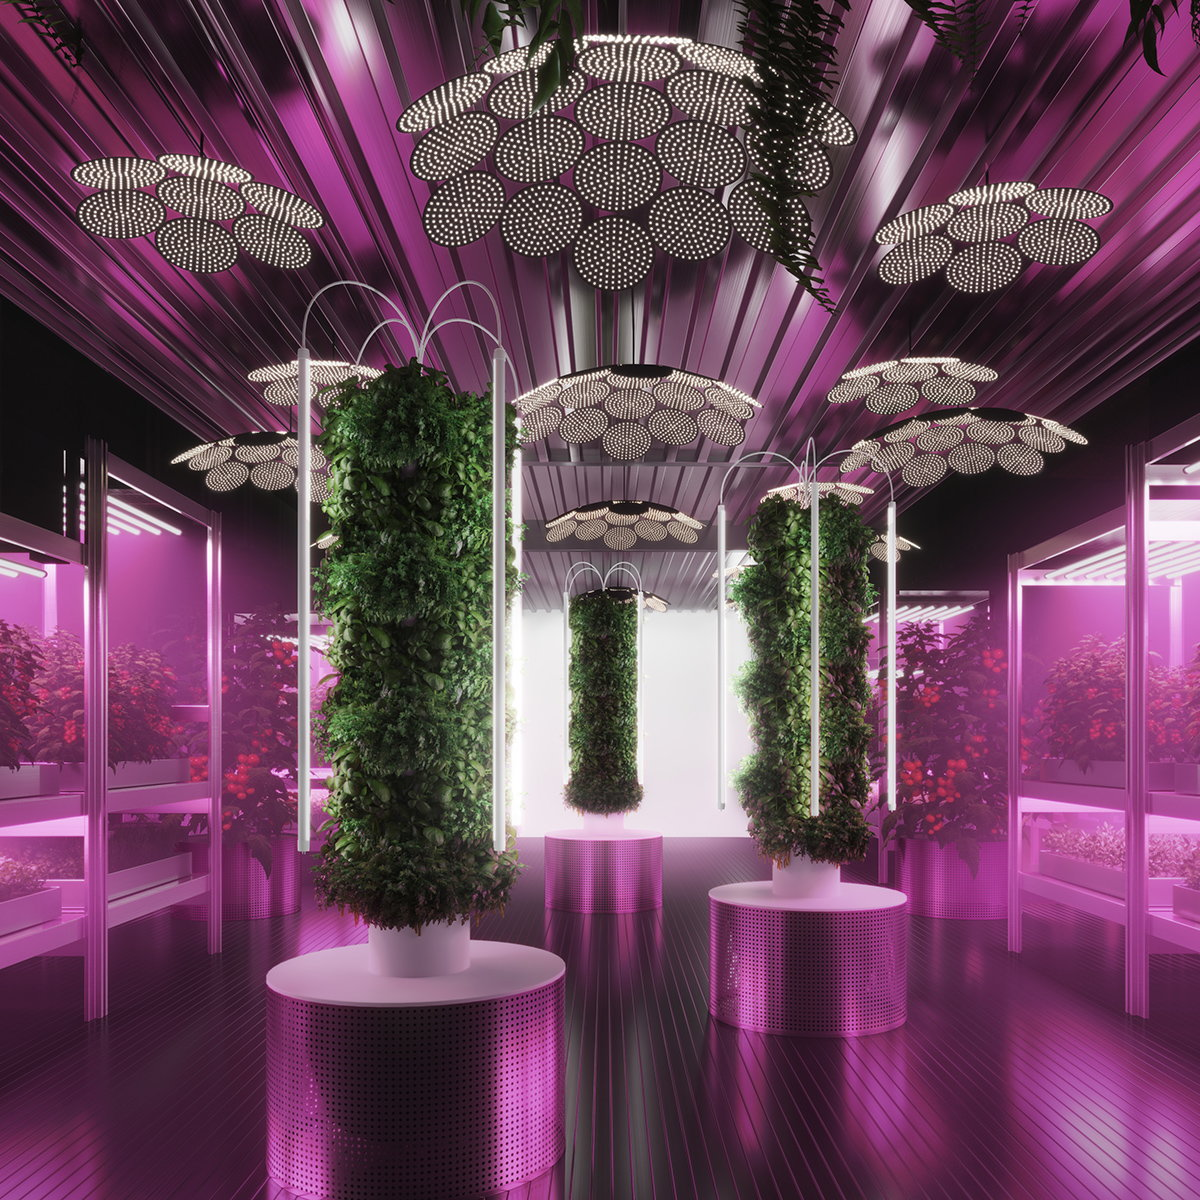 IKEA and Tom Dixon to Unveil 'Gardening will Save the World' at Chelsea Flower Show